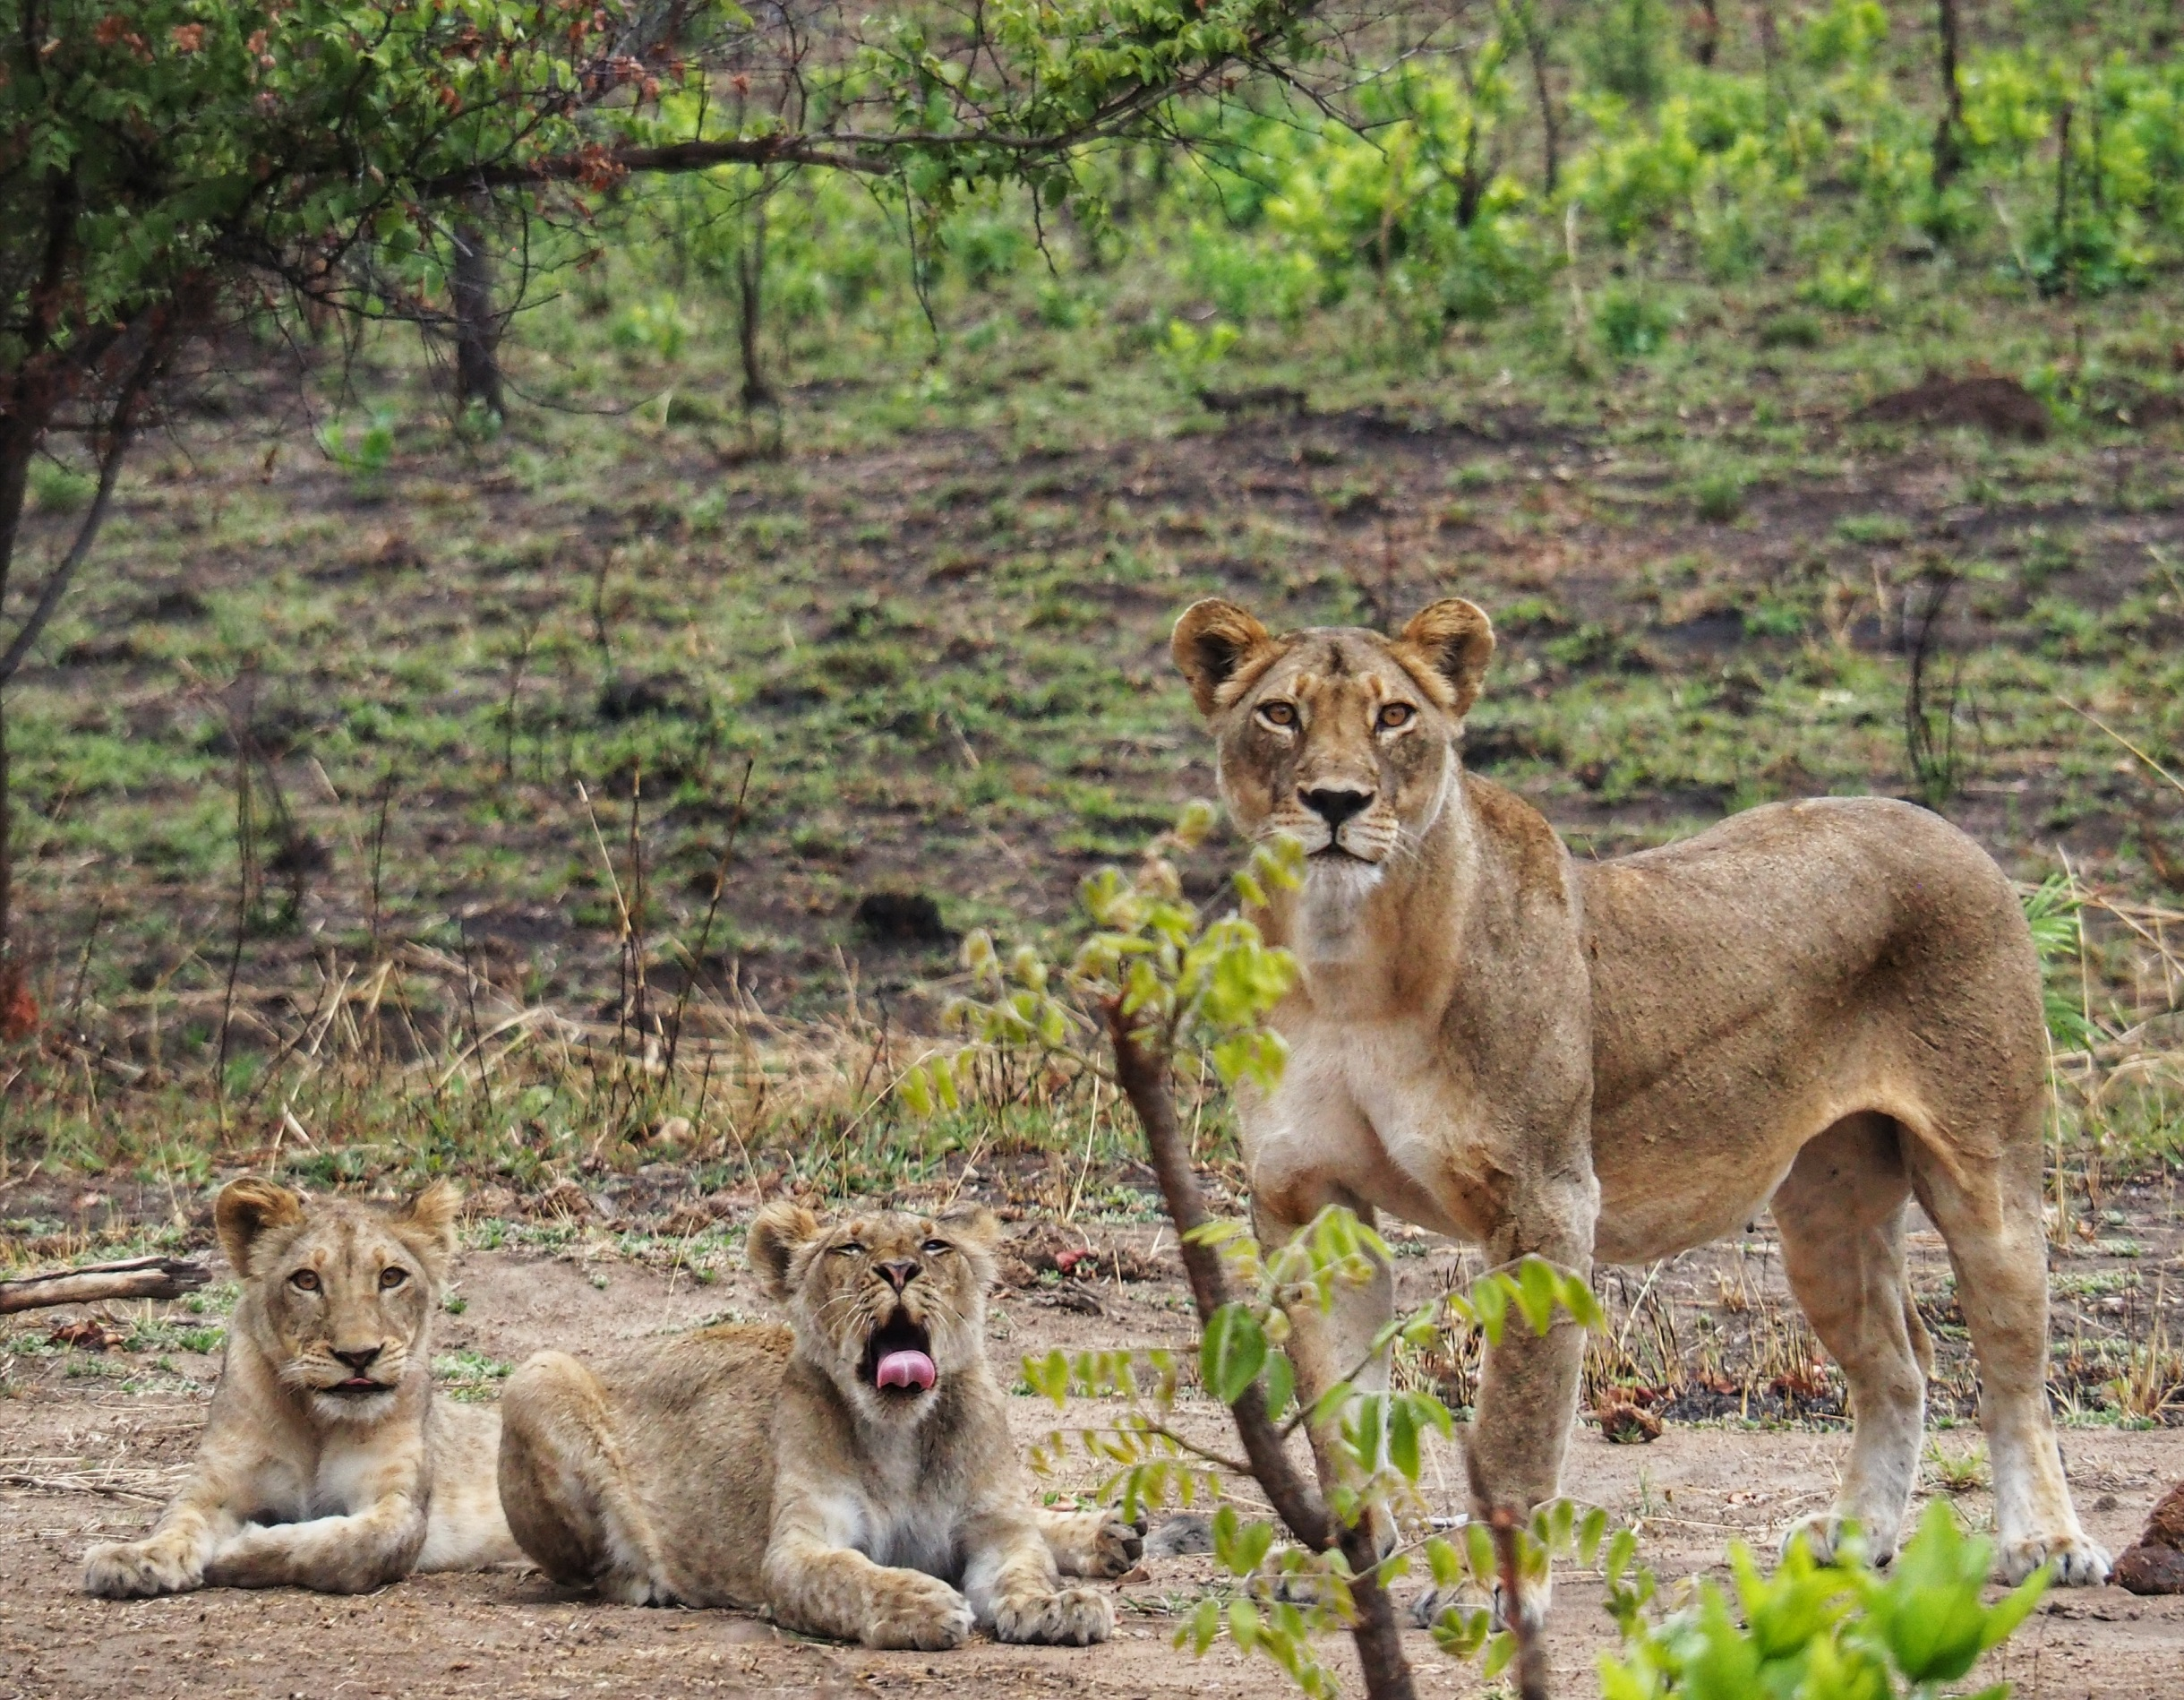 One of the two lionesses with two cubs passing through the wildlife area